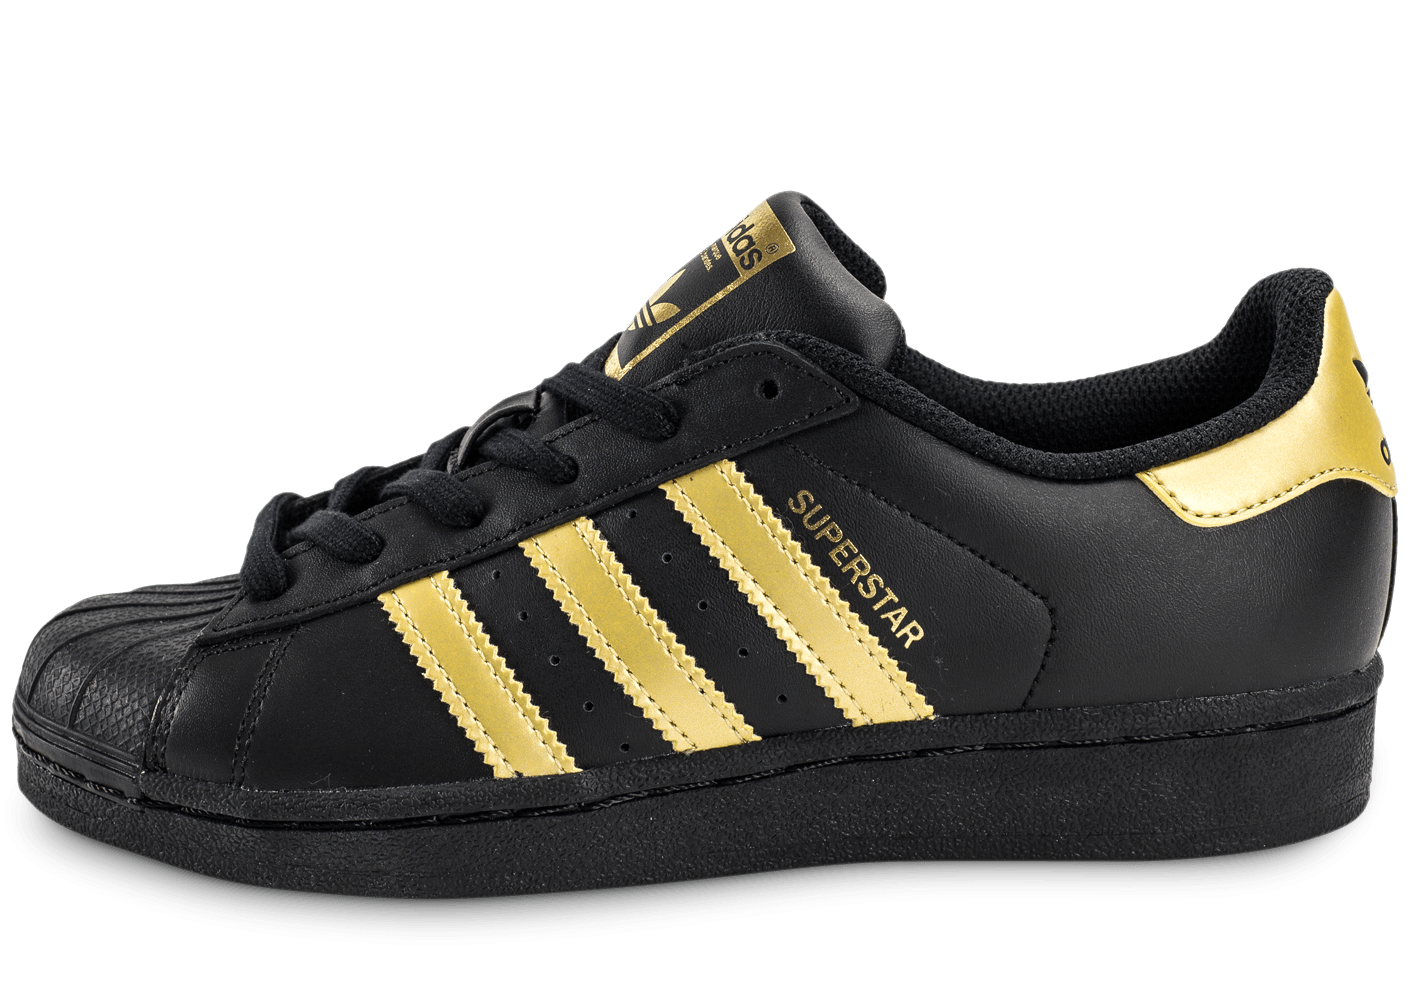 371d628cb5dec adidas Superstar Junior Black Gold - Chaussures adidas - Chausport